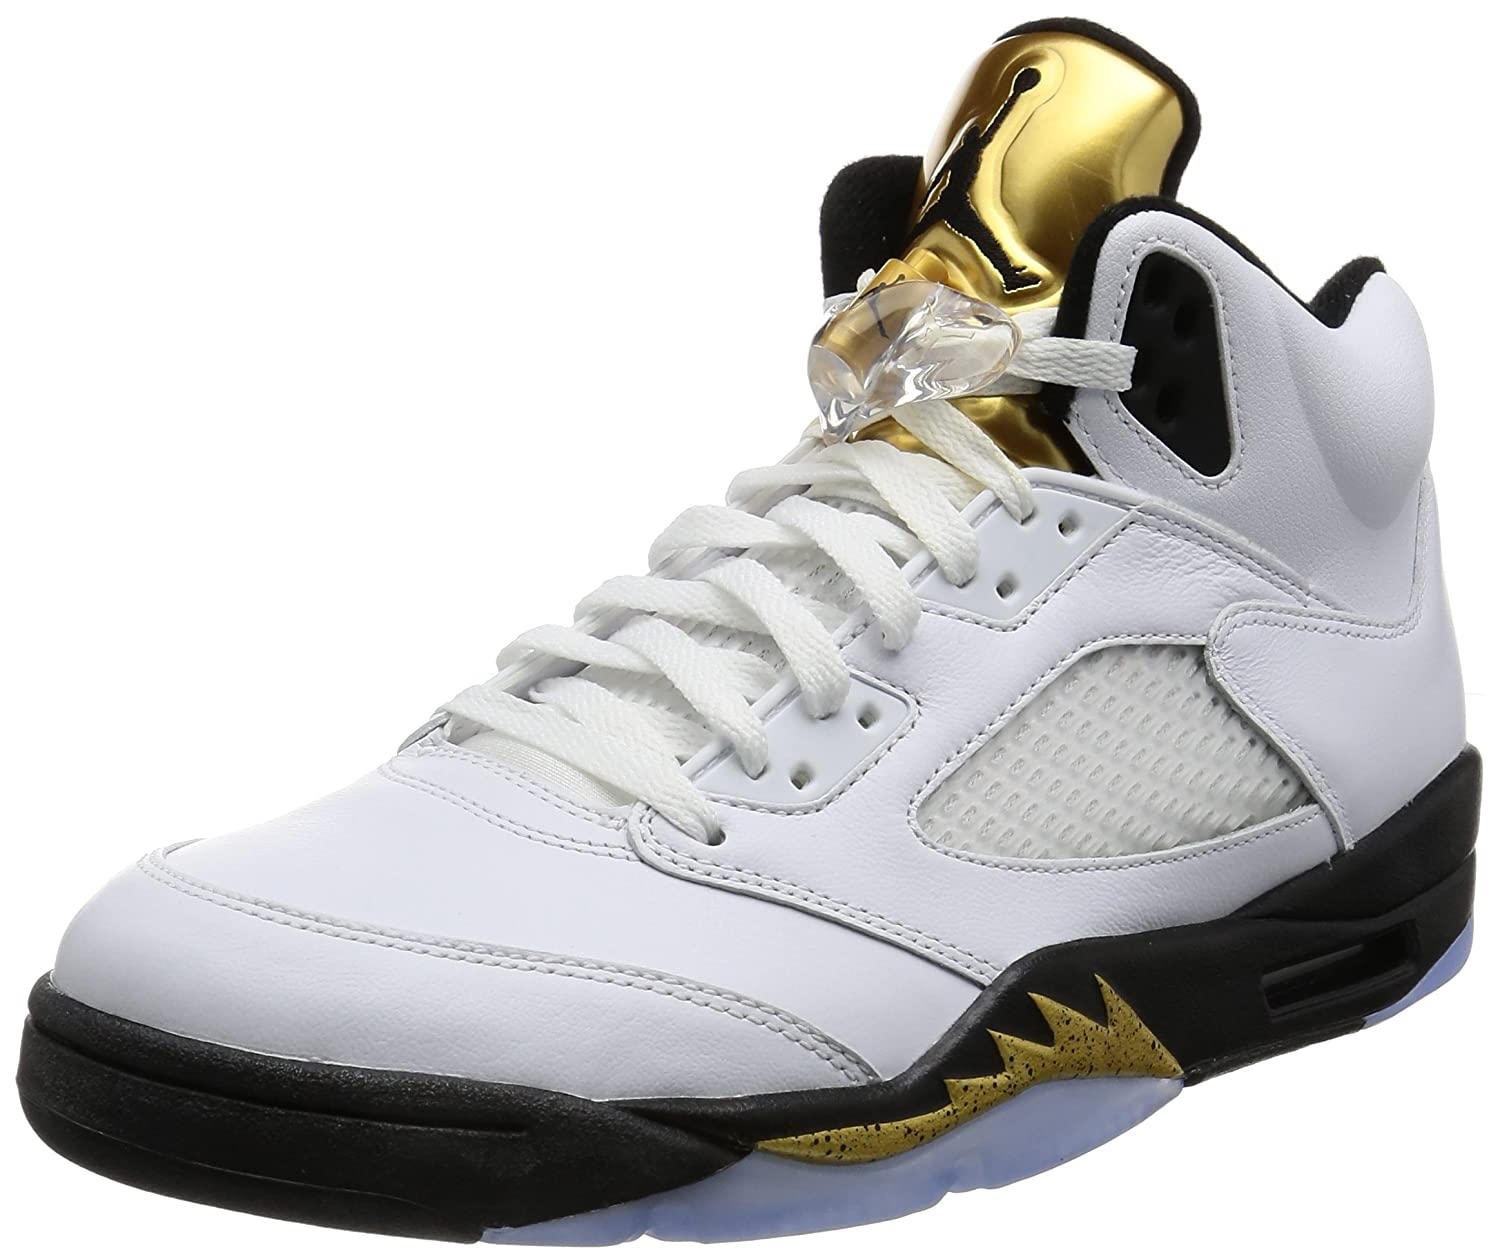 best website d3718 40a05 Nike Mens Air Jordan 5 Retro Olympic White/Black-Metallic Gold Leather Size  14